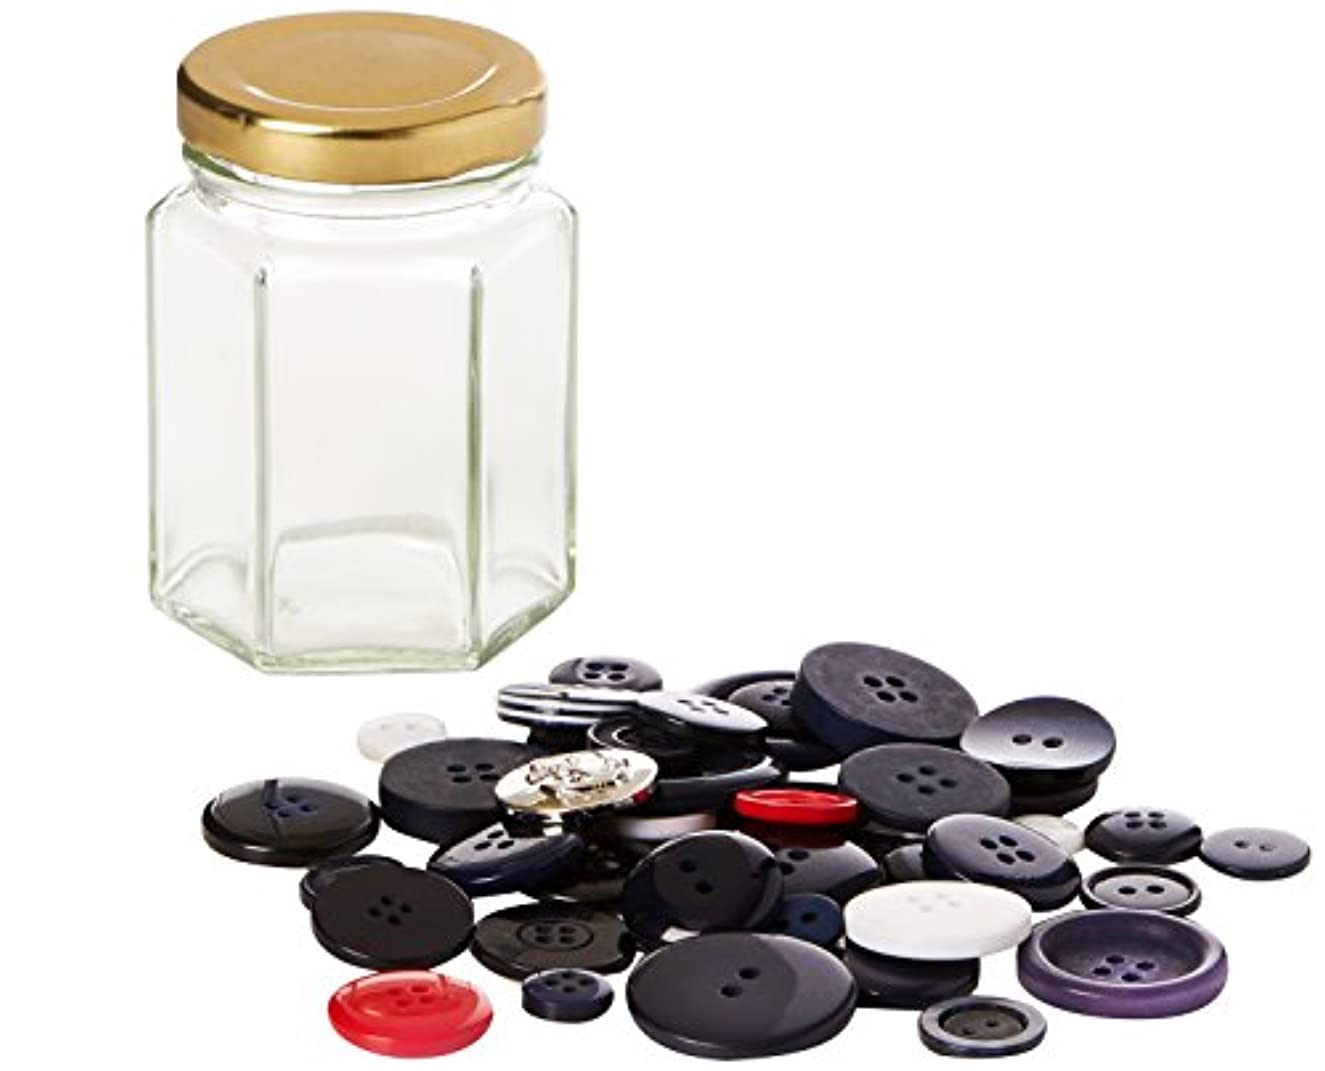 The Button Company 8 x 5 x 5 cm 45 g Polyester Buttons and Glass Jar Mixed Button Jar Nautical Theme Jar, Dark Blues with A Splash of Red and White